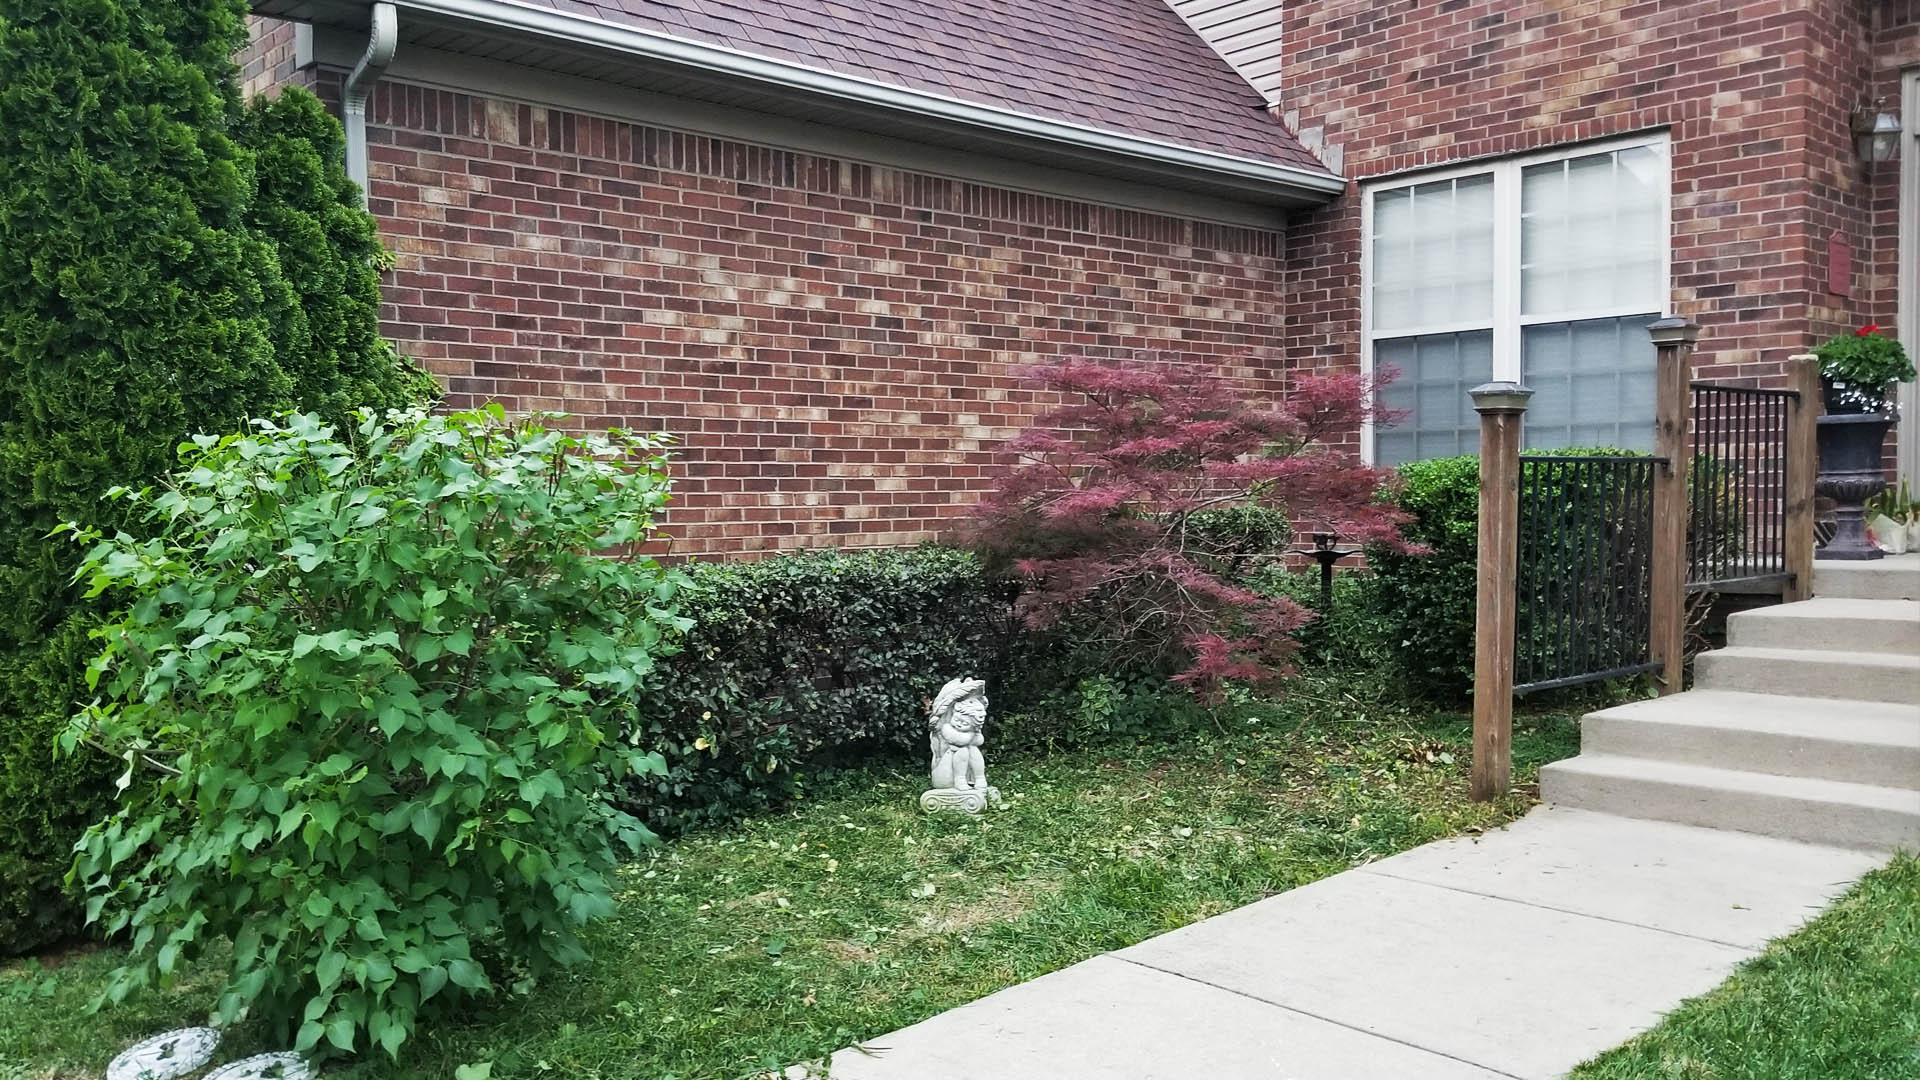 Residential yard clean up in Lexington, KY by Allen's Lawn Service.